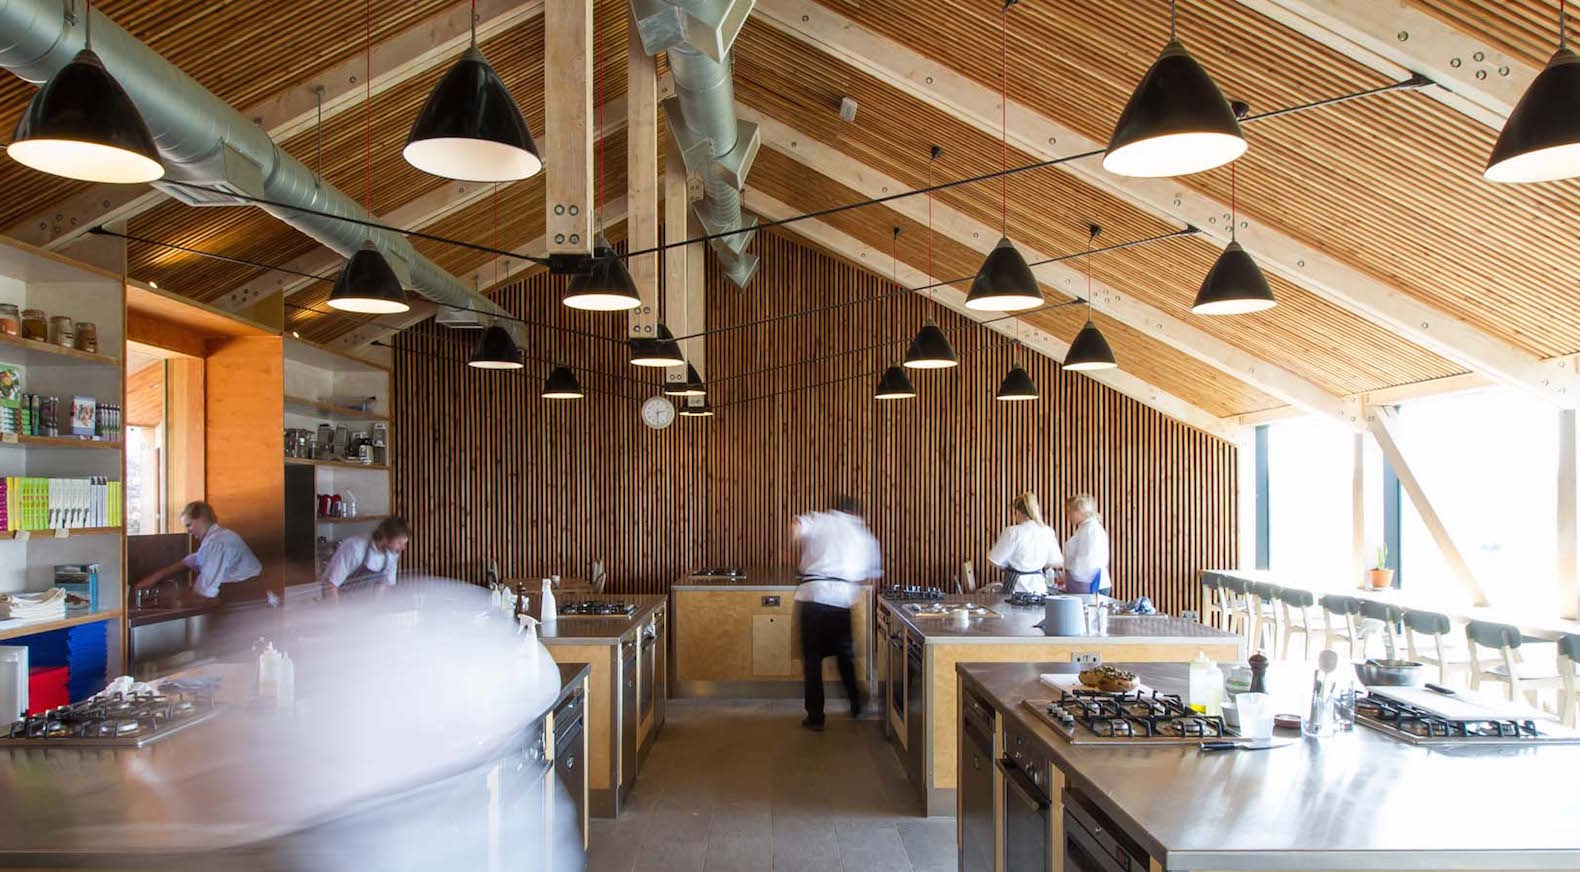 Disused farm buildings are transformed into a sustainable farming and cooking school